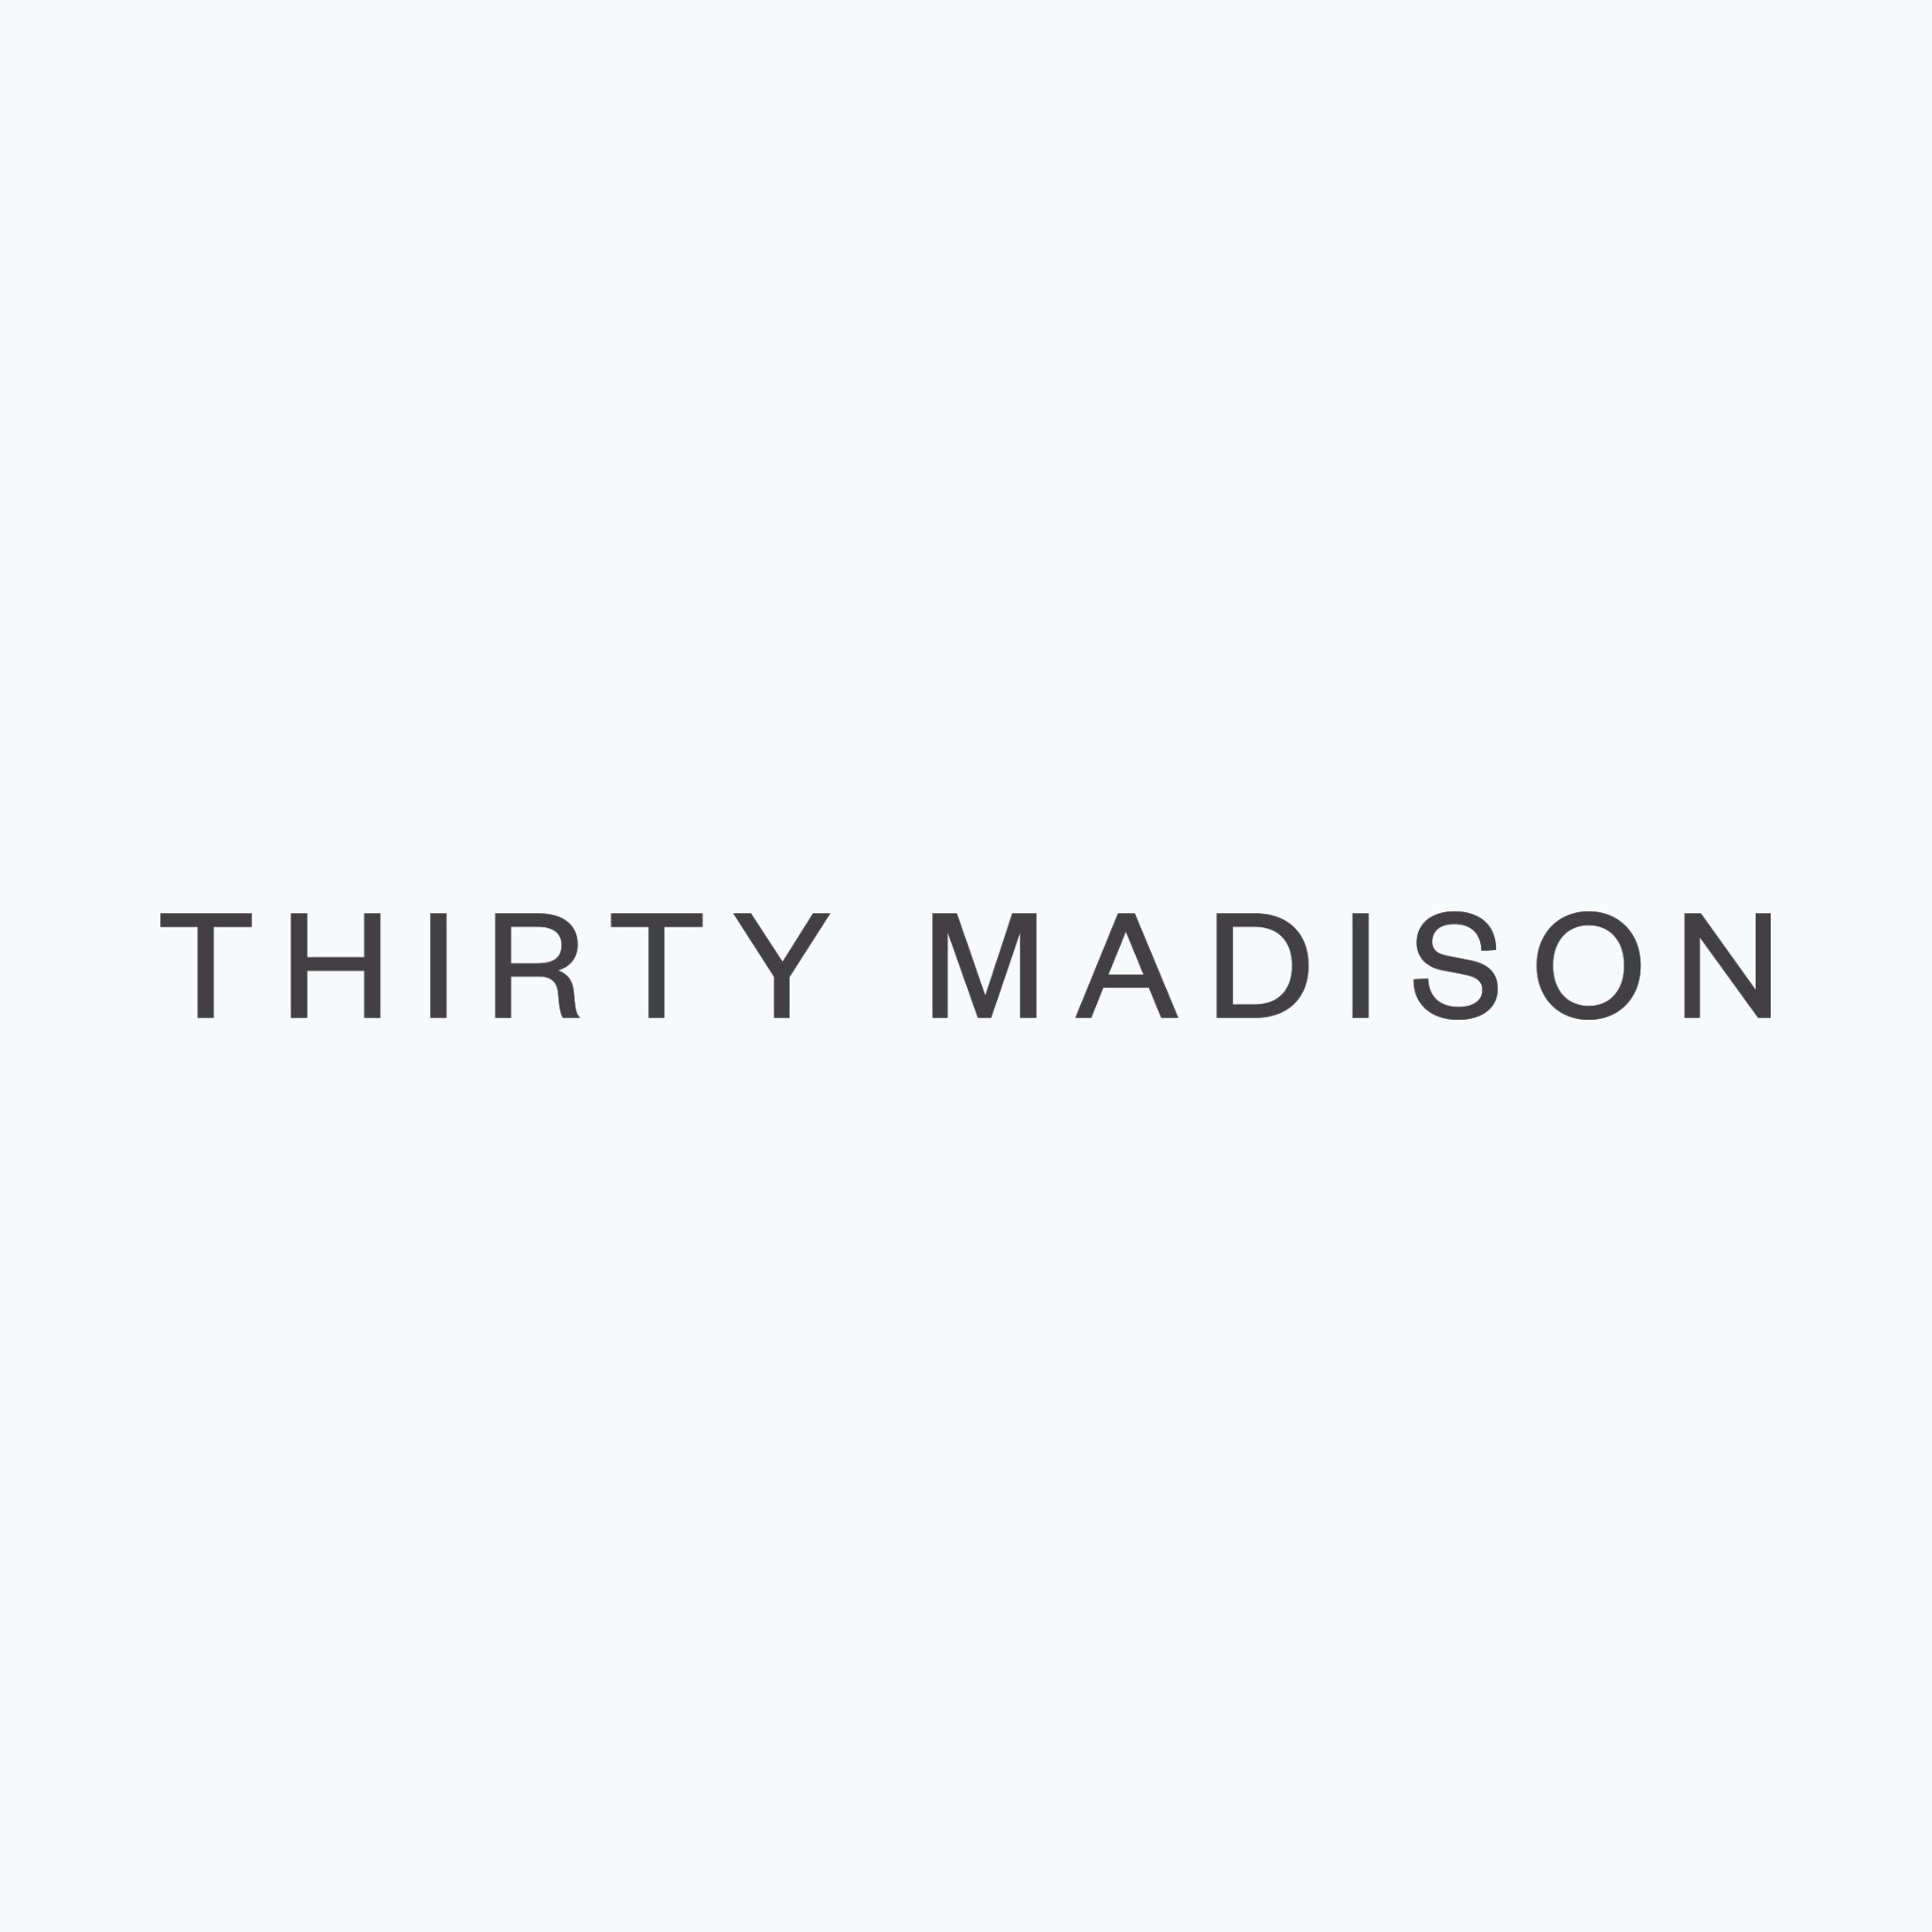 Thirty Madison